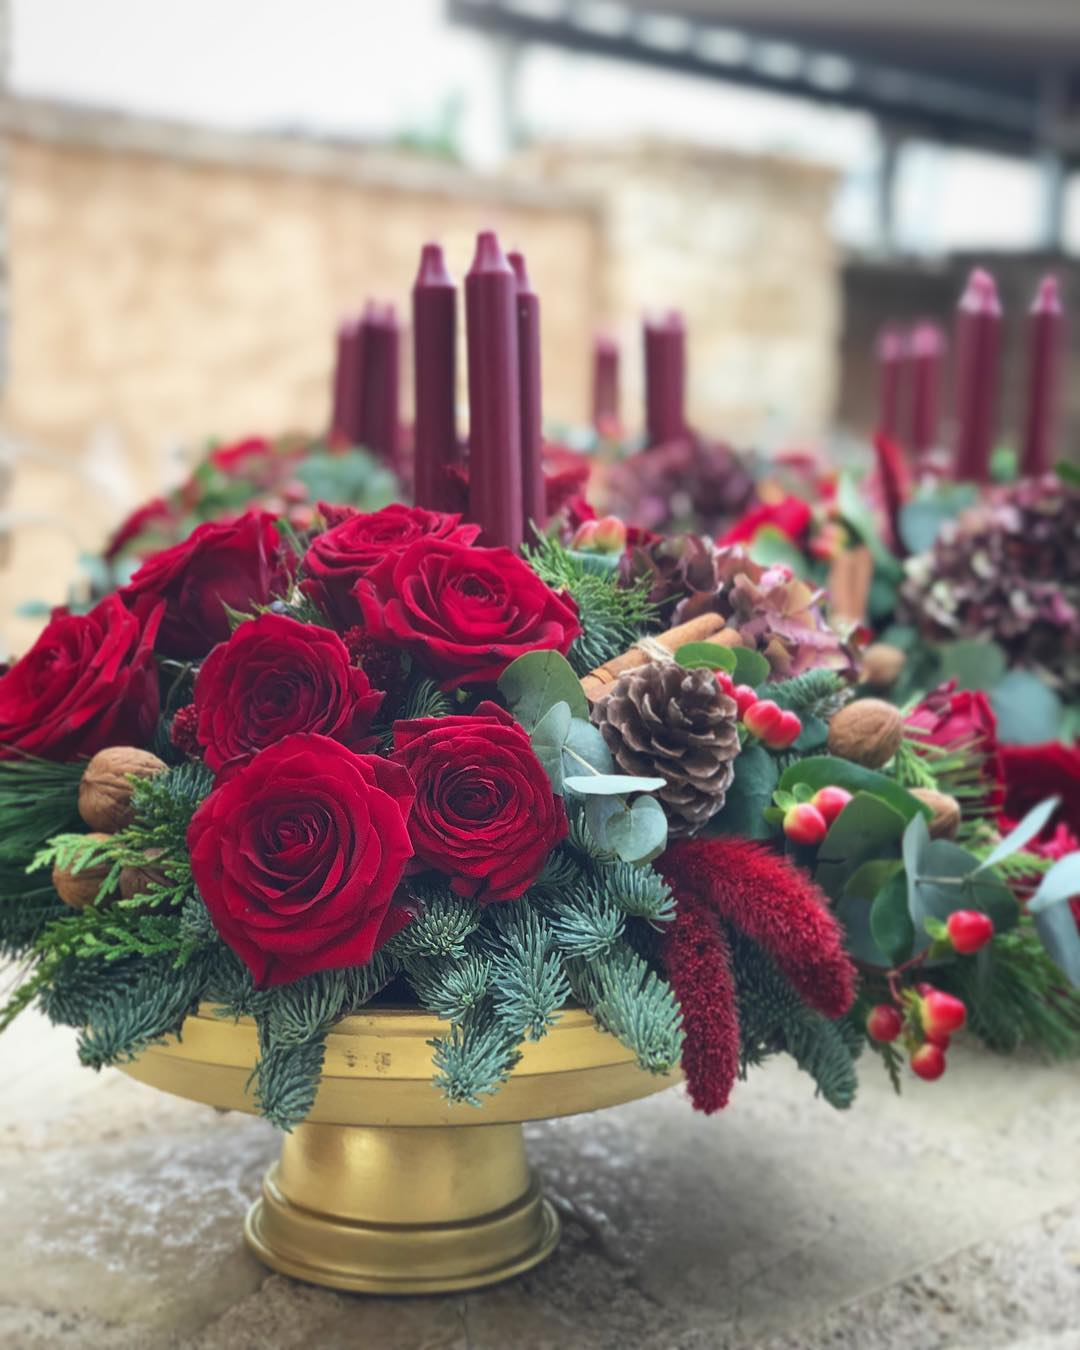 Christmas Flowers Decoration 2020 (25)